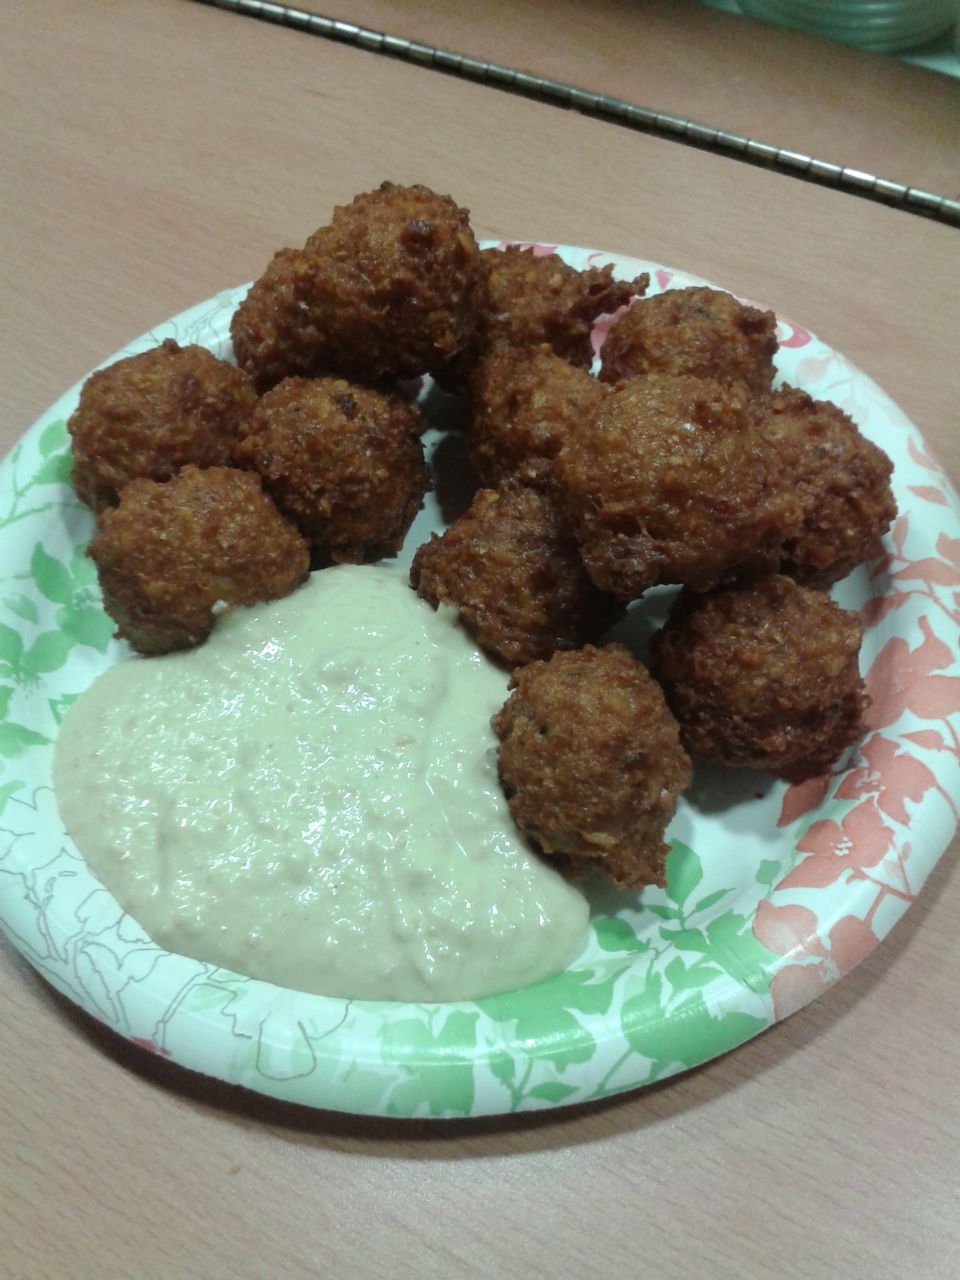 https://i0.wp.com/fatgayvegan.com/wp-content/uploads/2014/02/falafel-plate.jpg?fit=960%2C1280